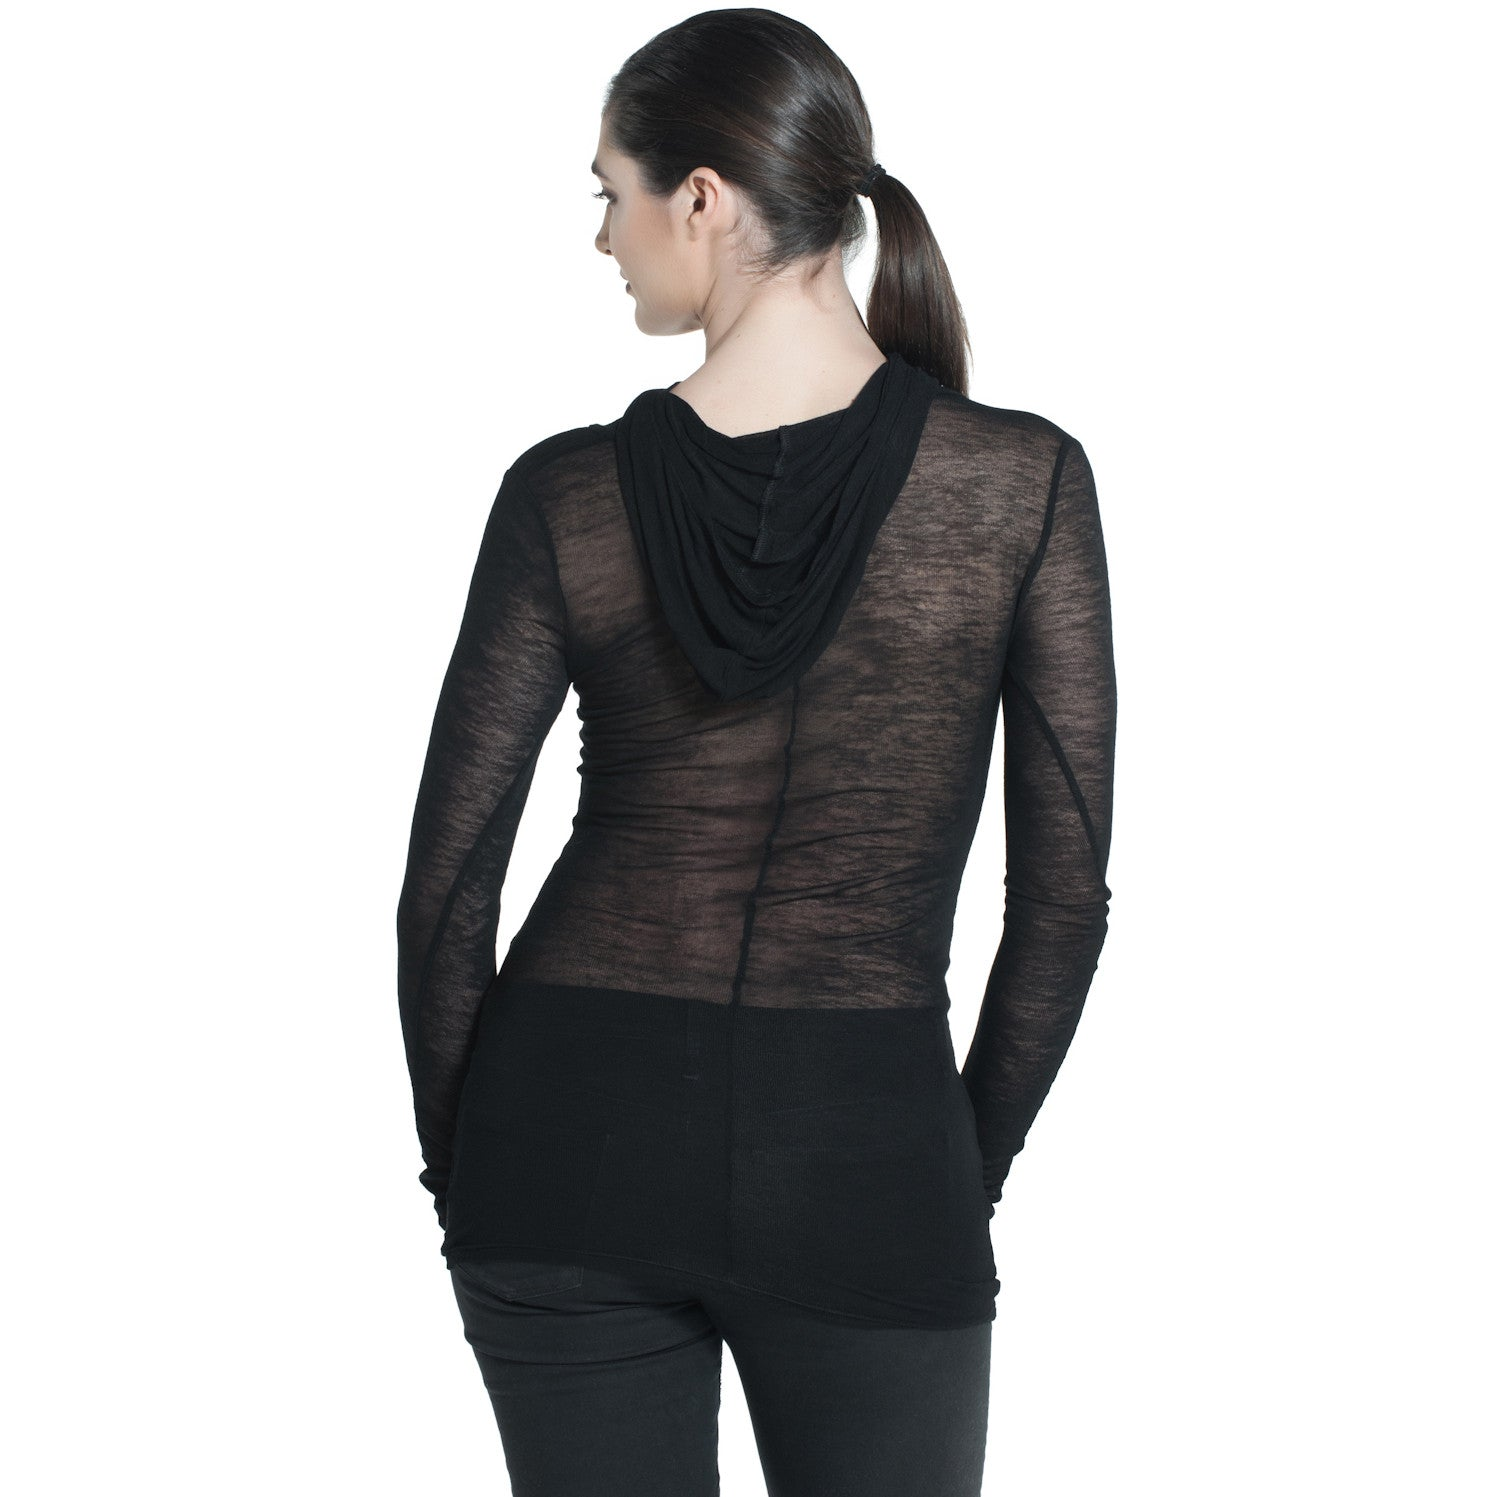 SHEER HOODED LONG SLEEVE TOP IN BLACK